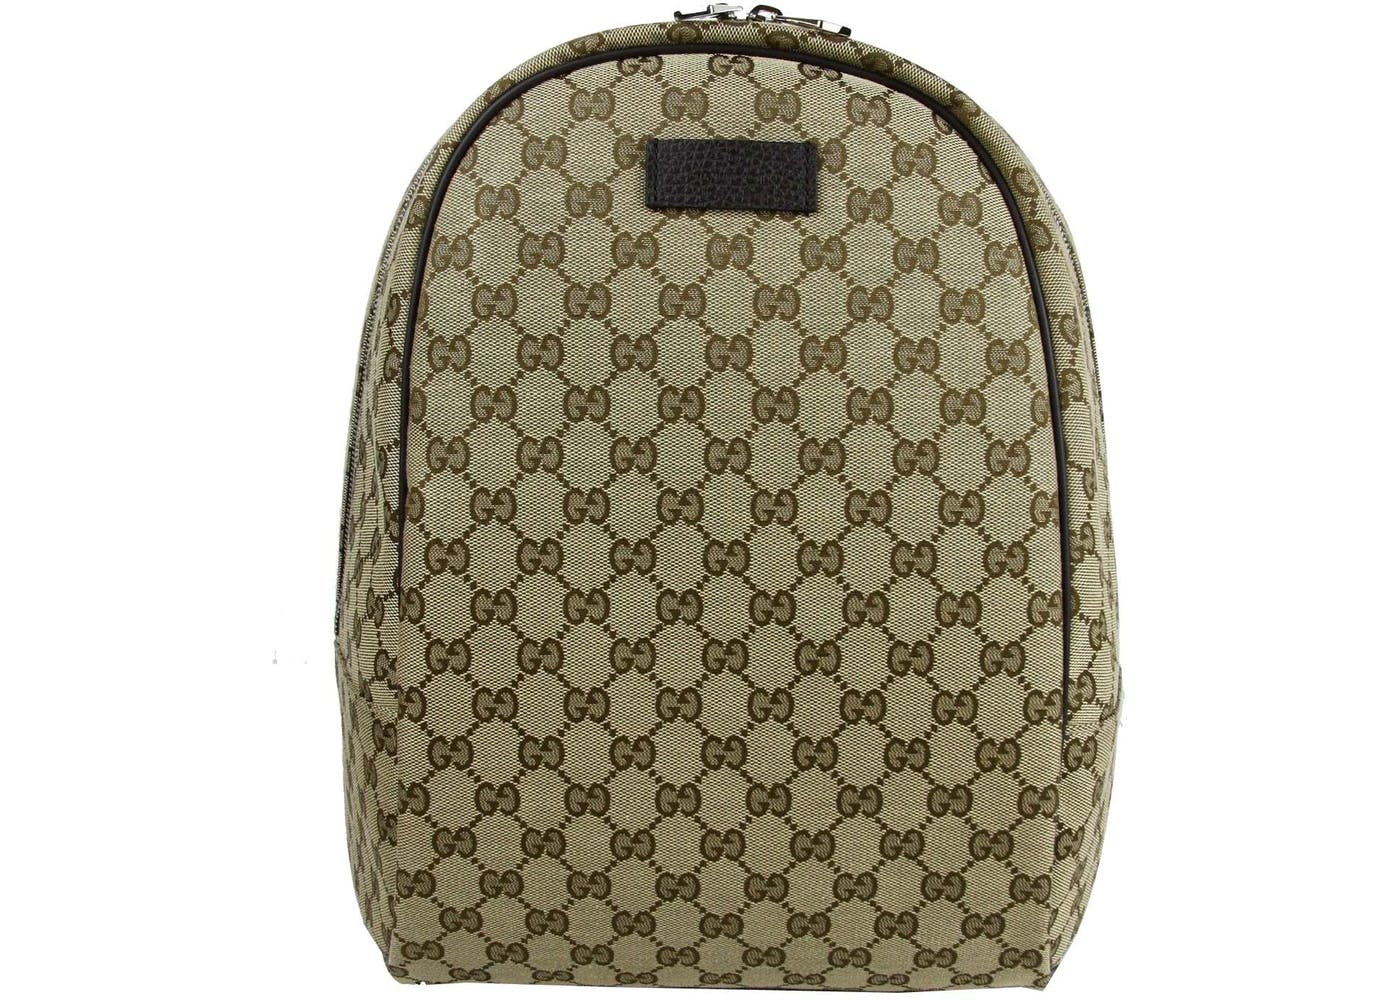 83486426bf7a This Gucci Top Zip GG backpack in Gucci Monogram has a top zip closure